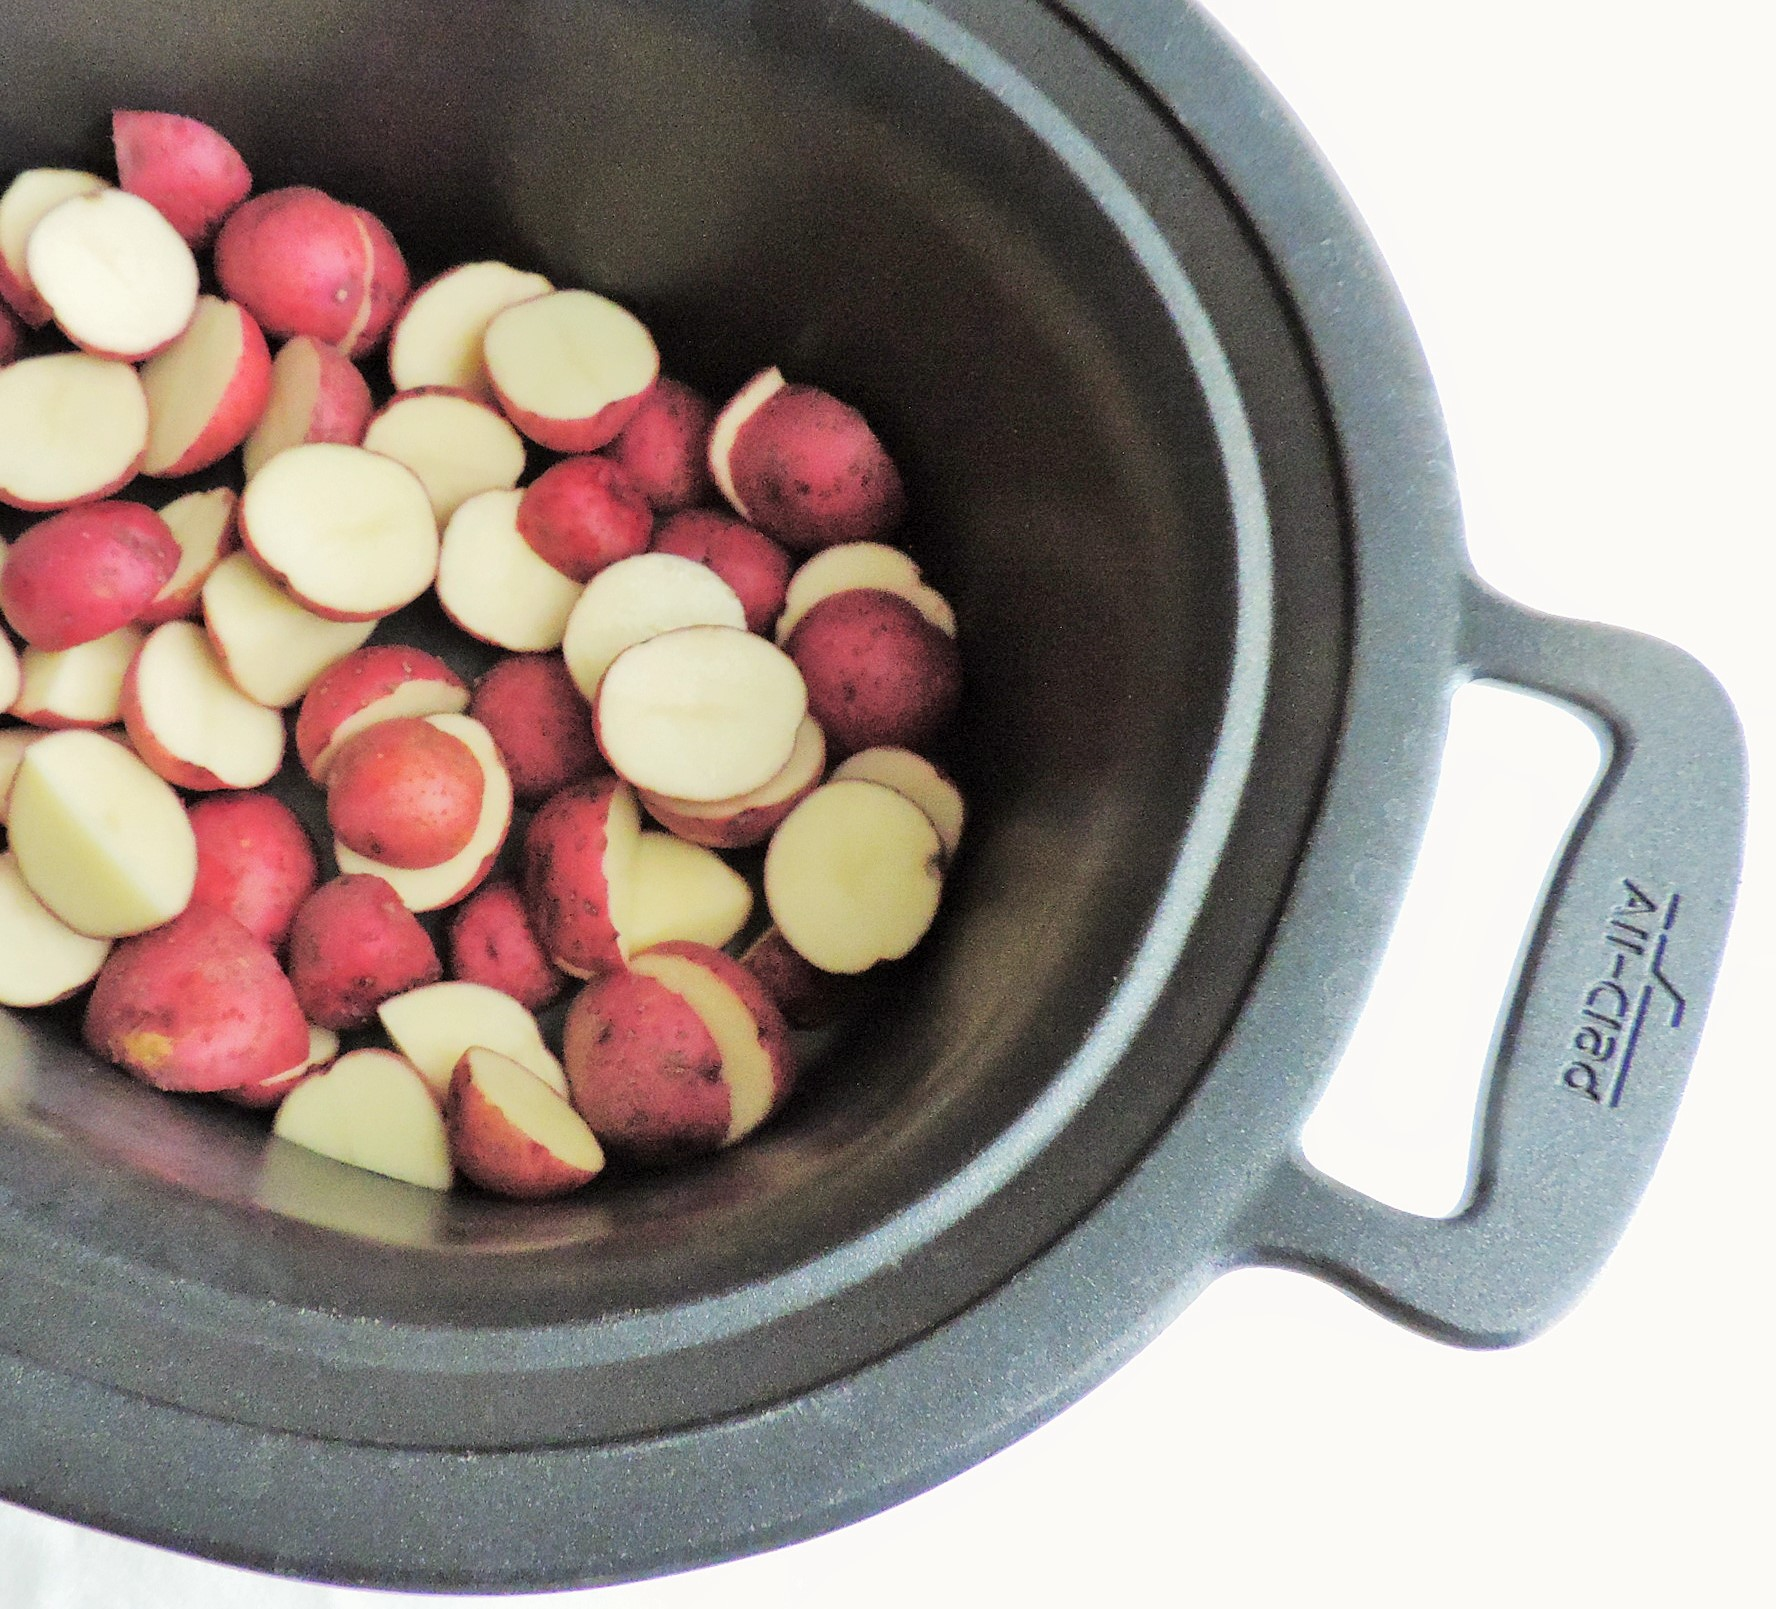 Steamed Mashed Crock Pot Red Potatoes My Midlife Kitchen